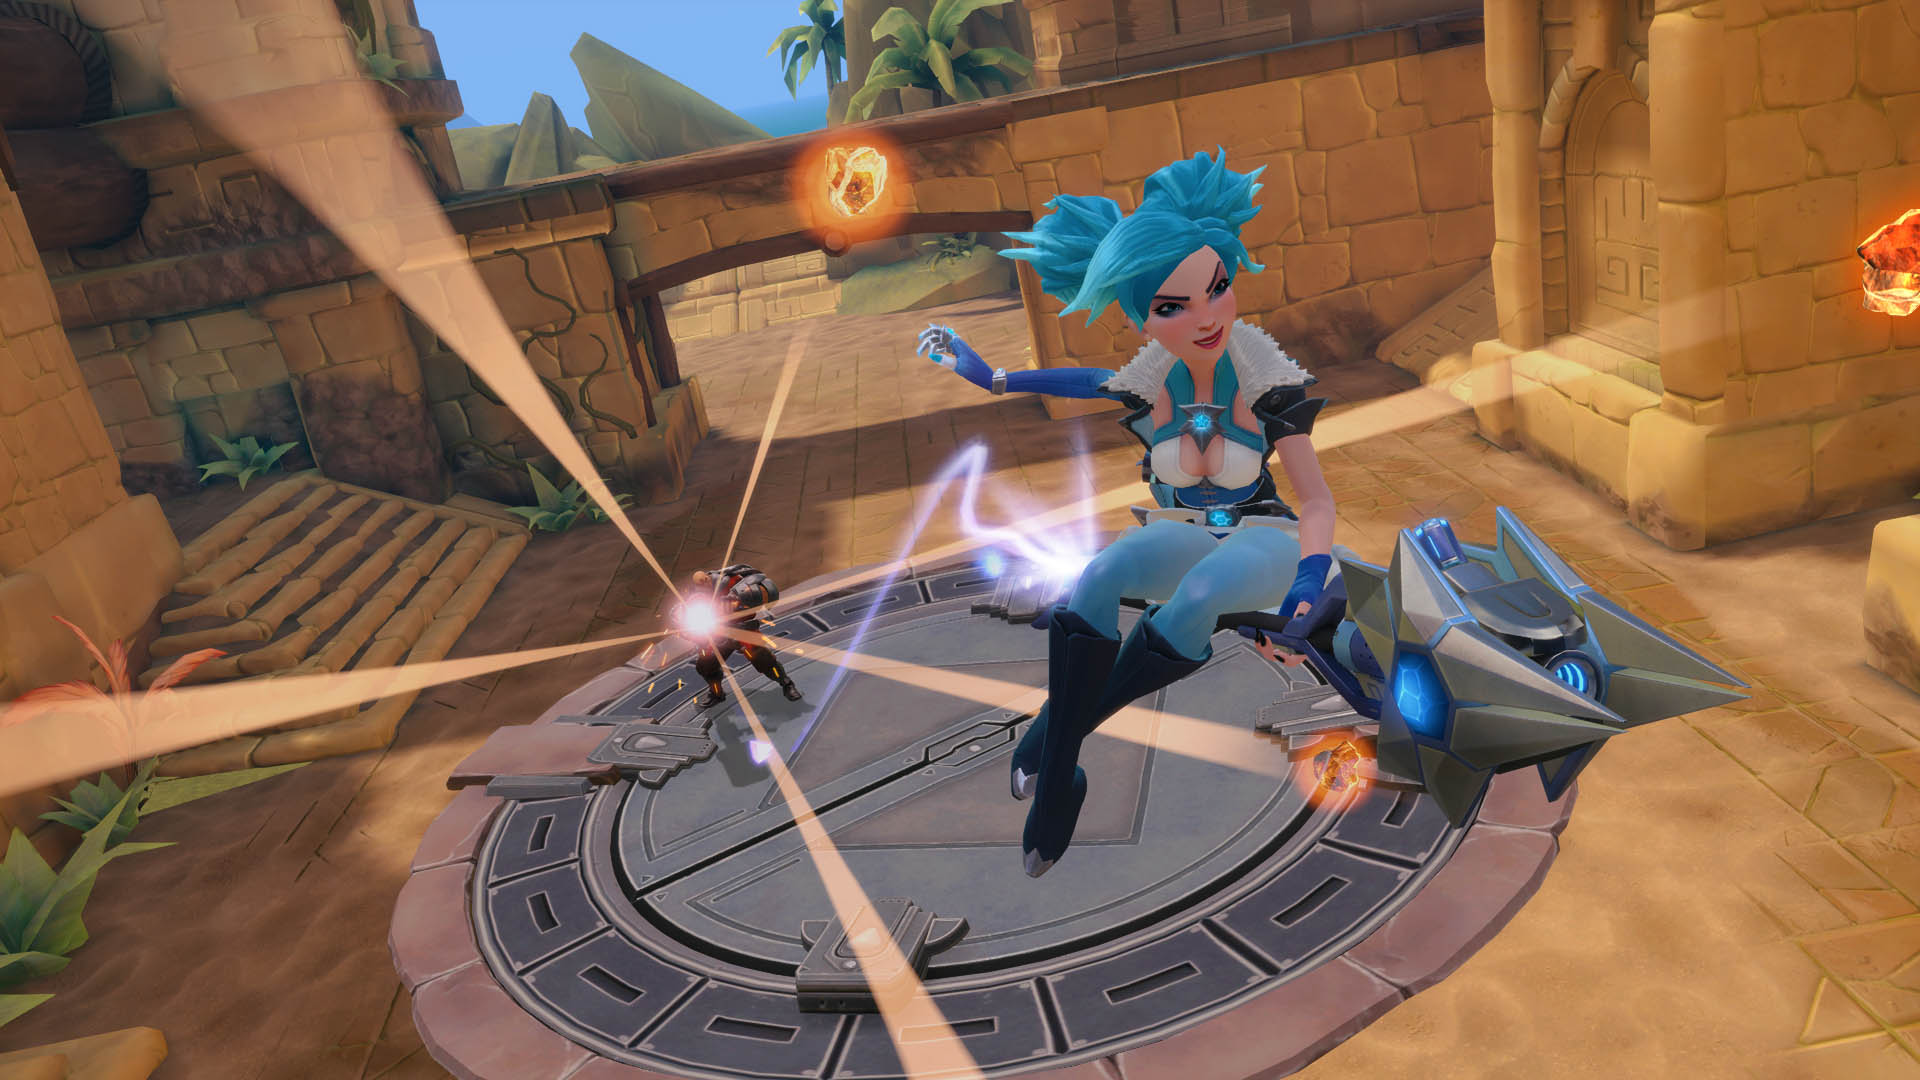 Paladins Evie Giveaway Free Codes | The Escapist